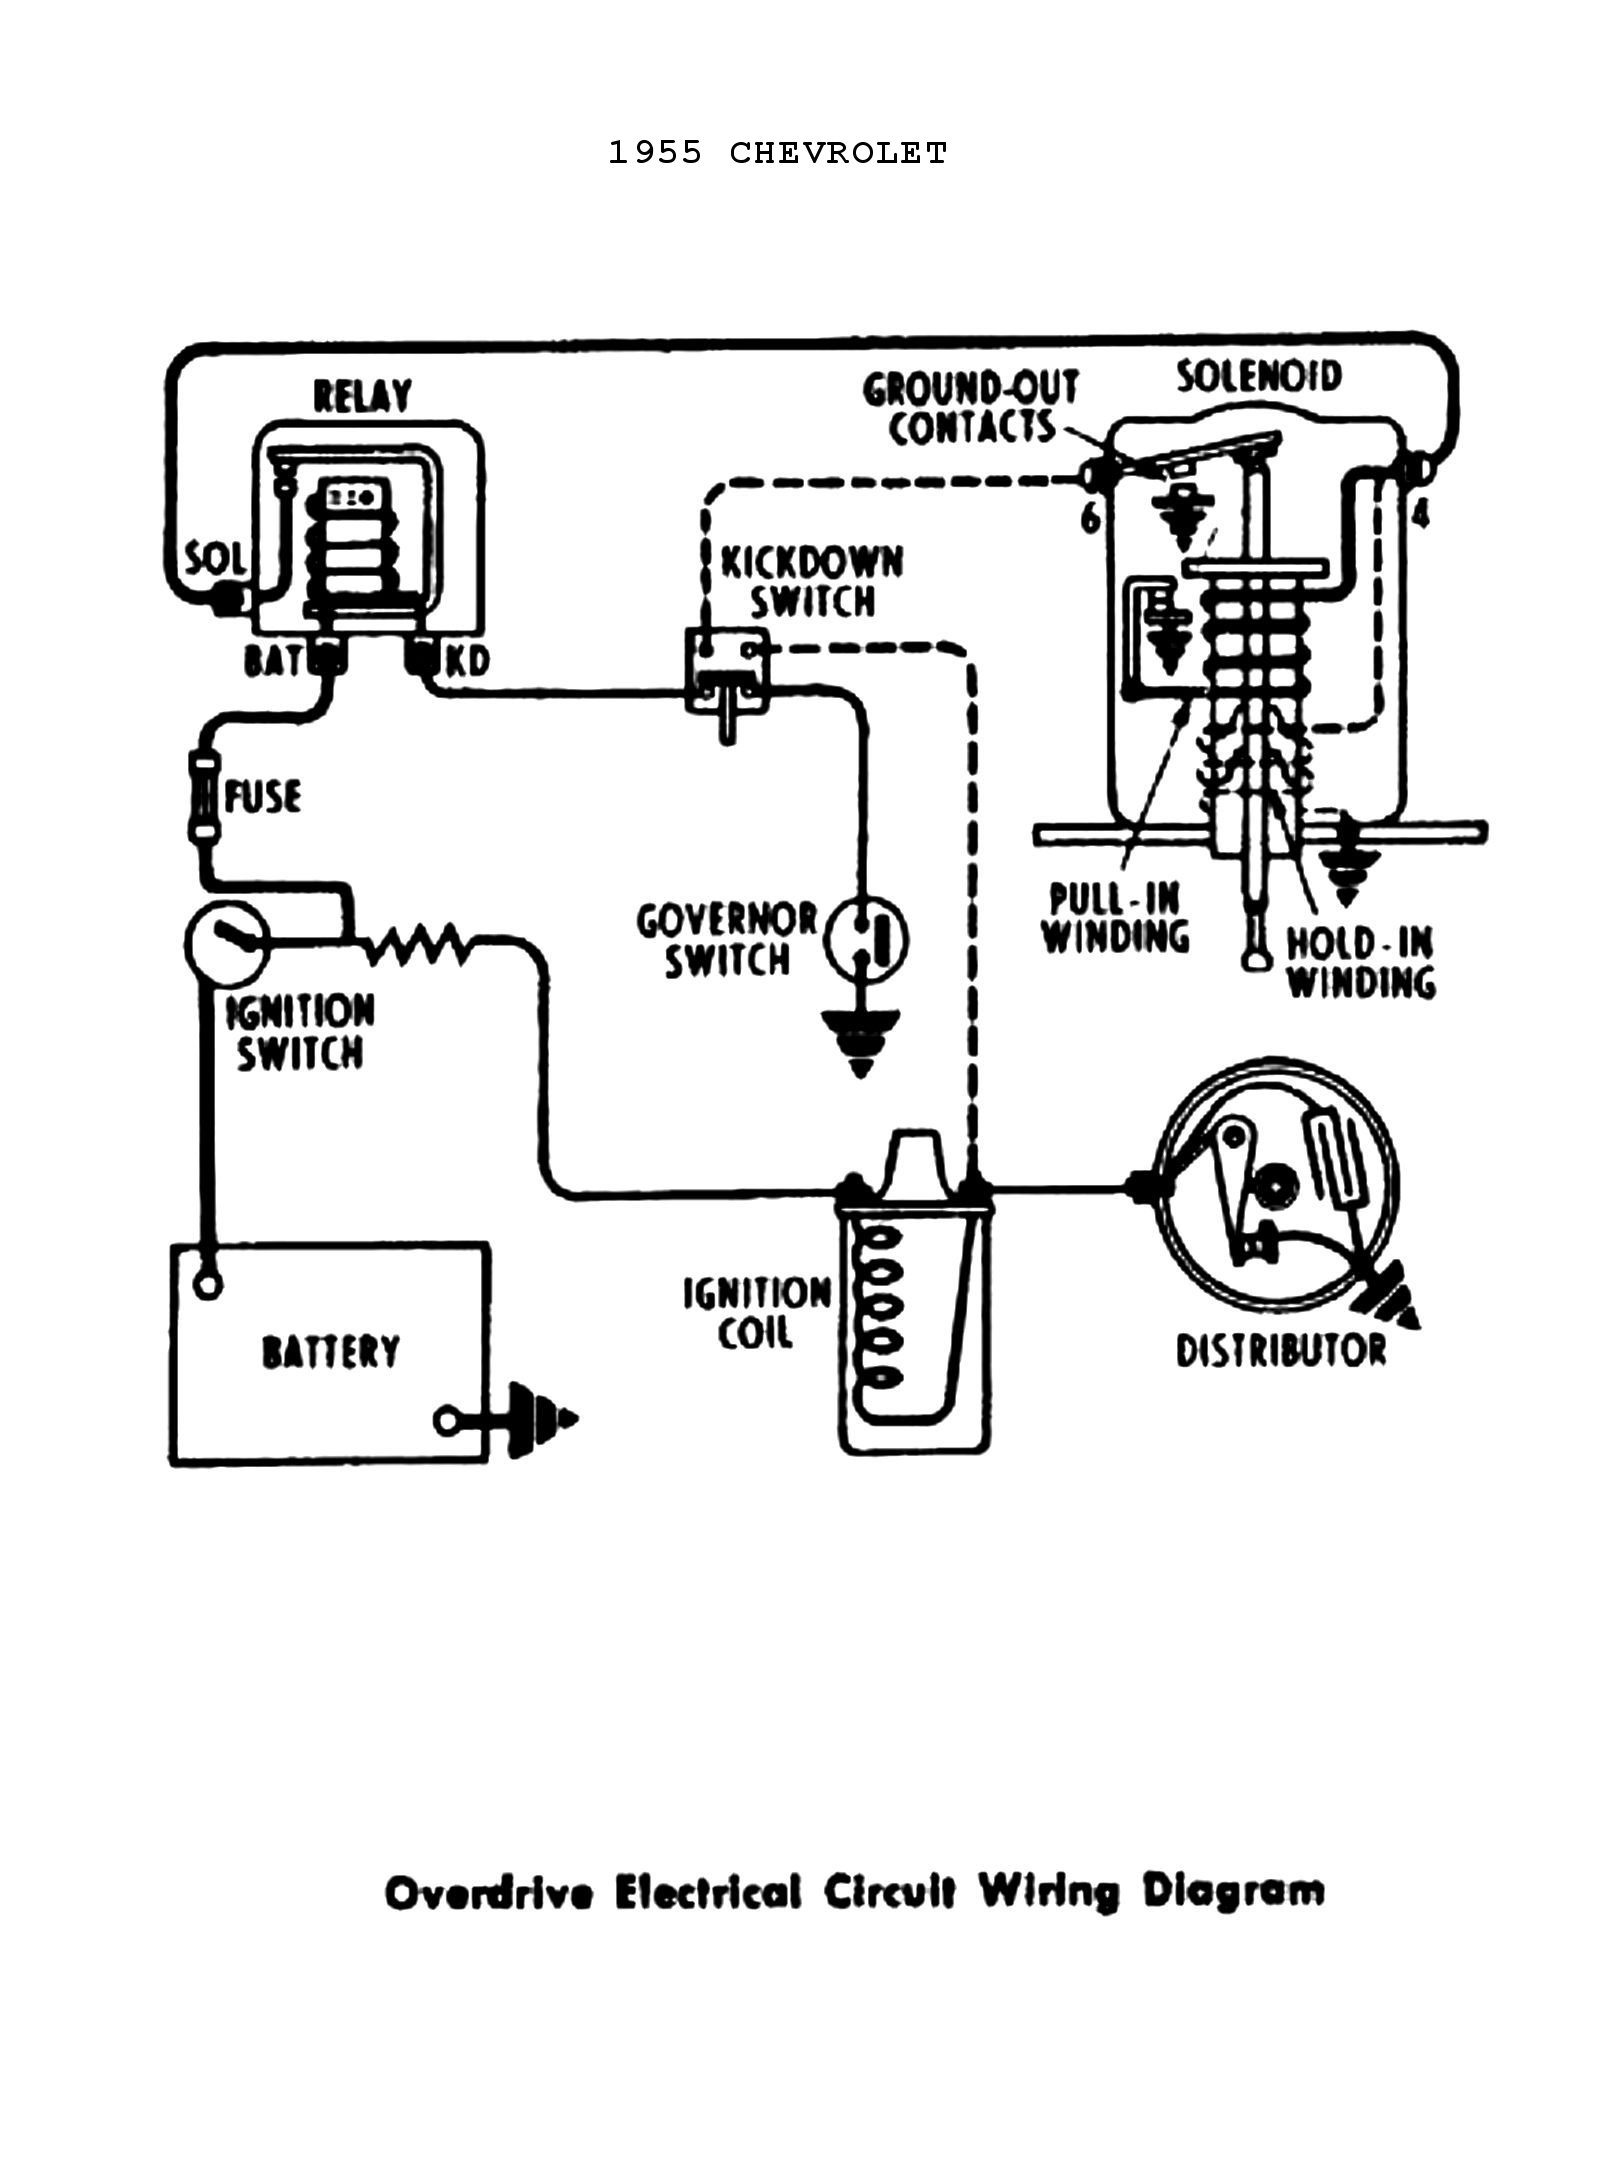 55odtrans1 chevy wiring diagrams ford ignition system wiring diagram at readyjetset.co